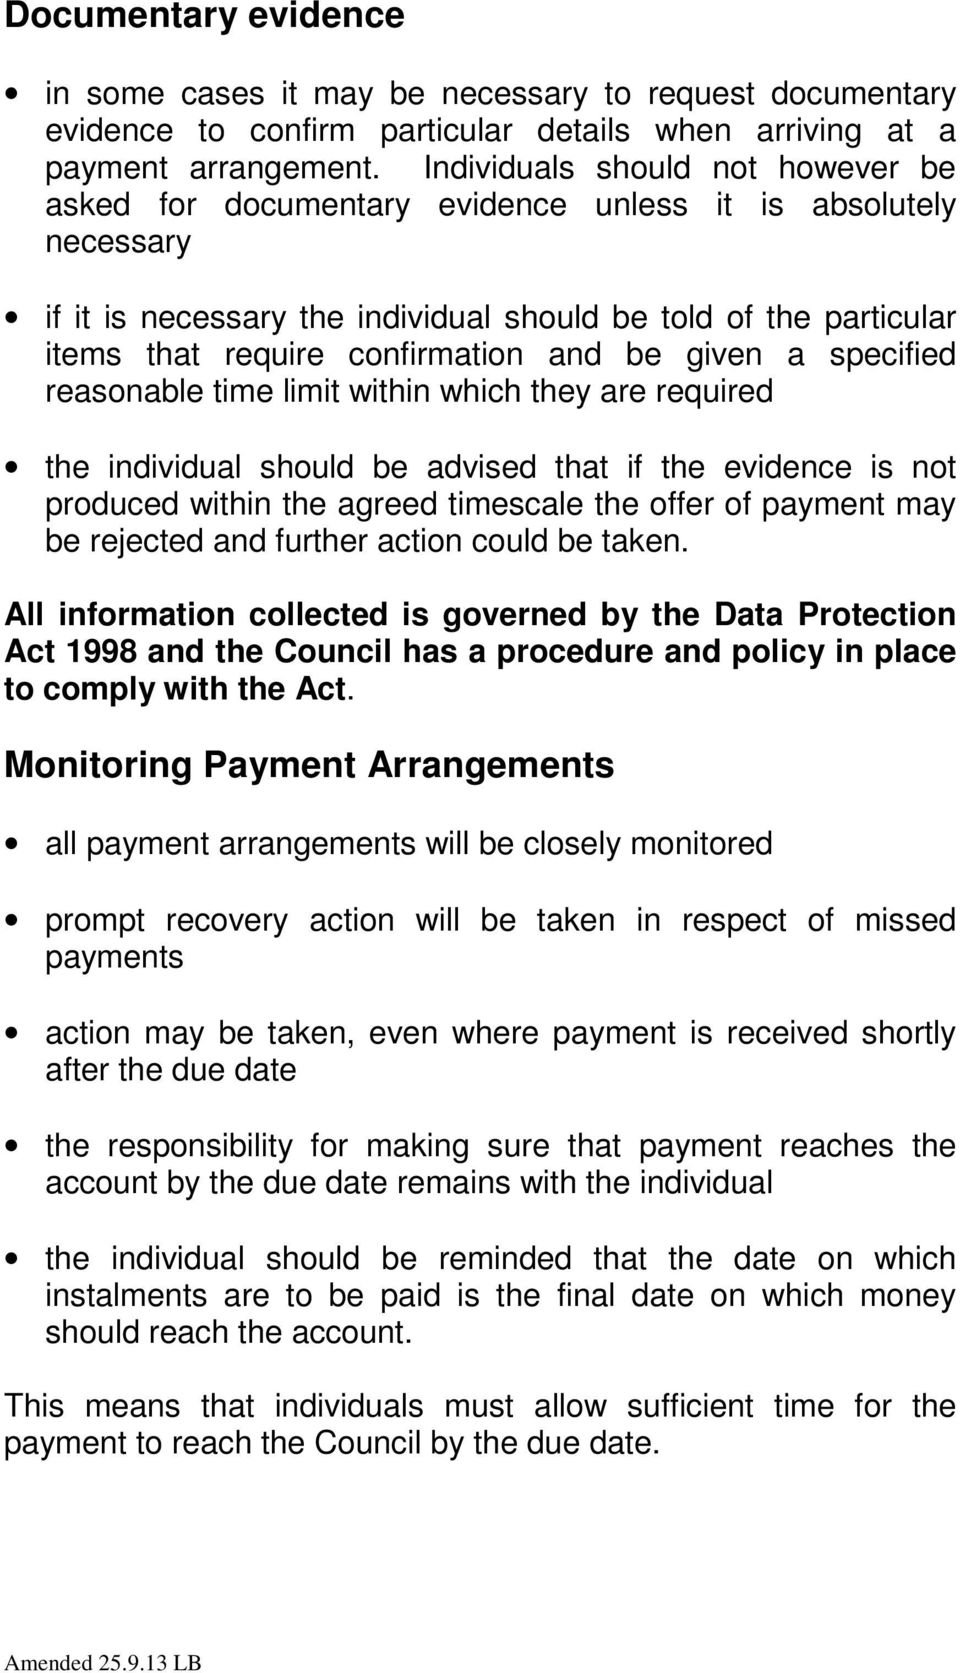 and be given a specified reasonable time limit within which they are required the individual should be advised that if the evidence is not produced within the agreed timescale the offer of payment